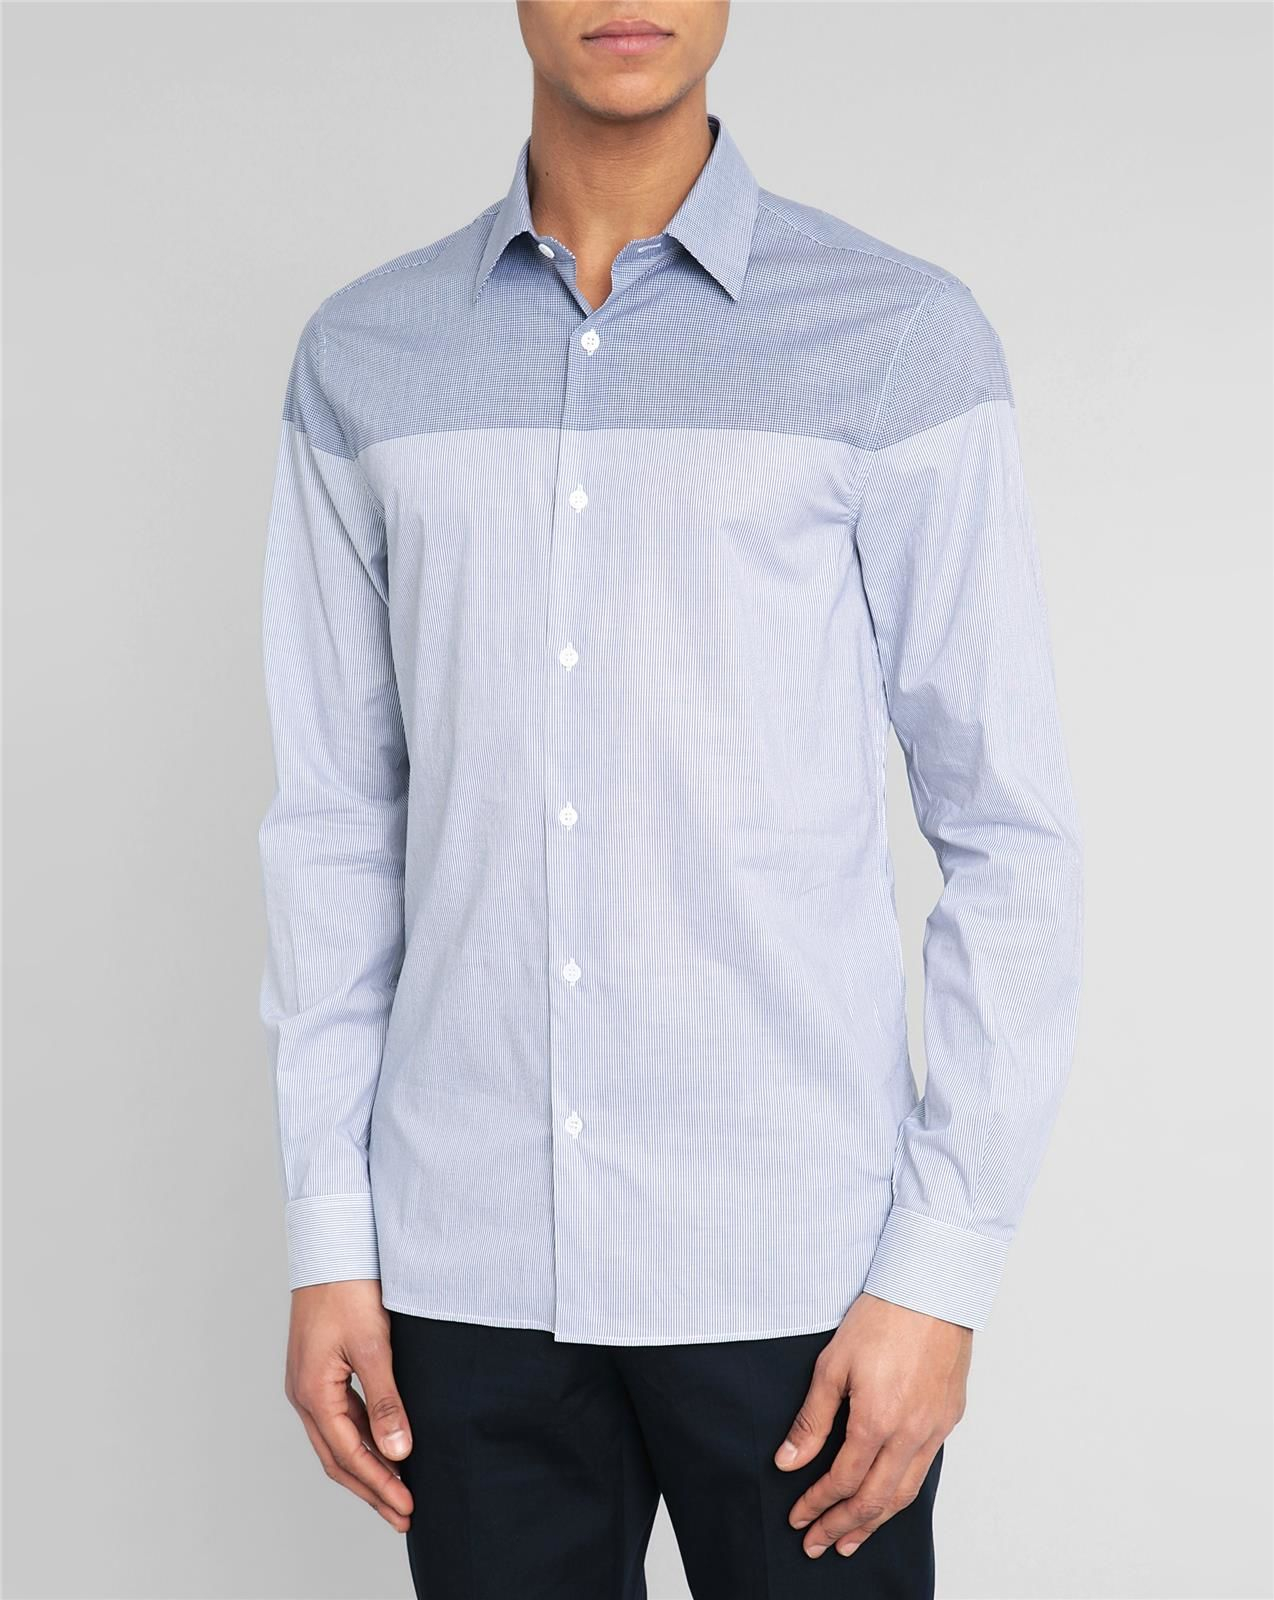 Melindagloss Navy Gingham Classic Collar Shirt In Blue For